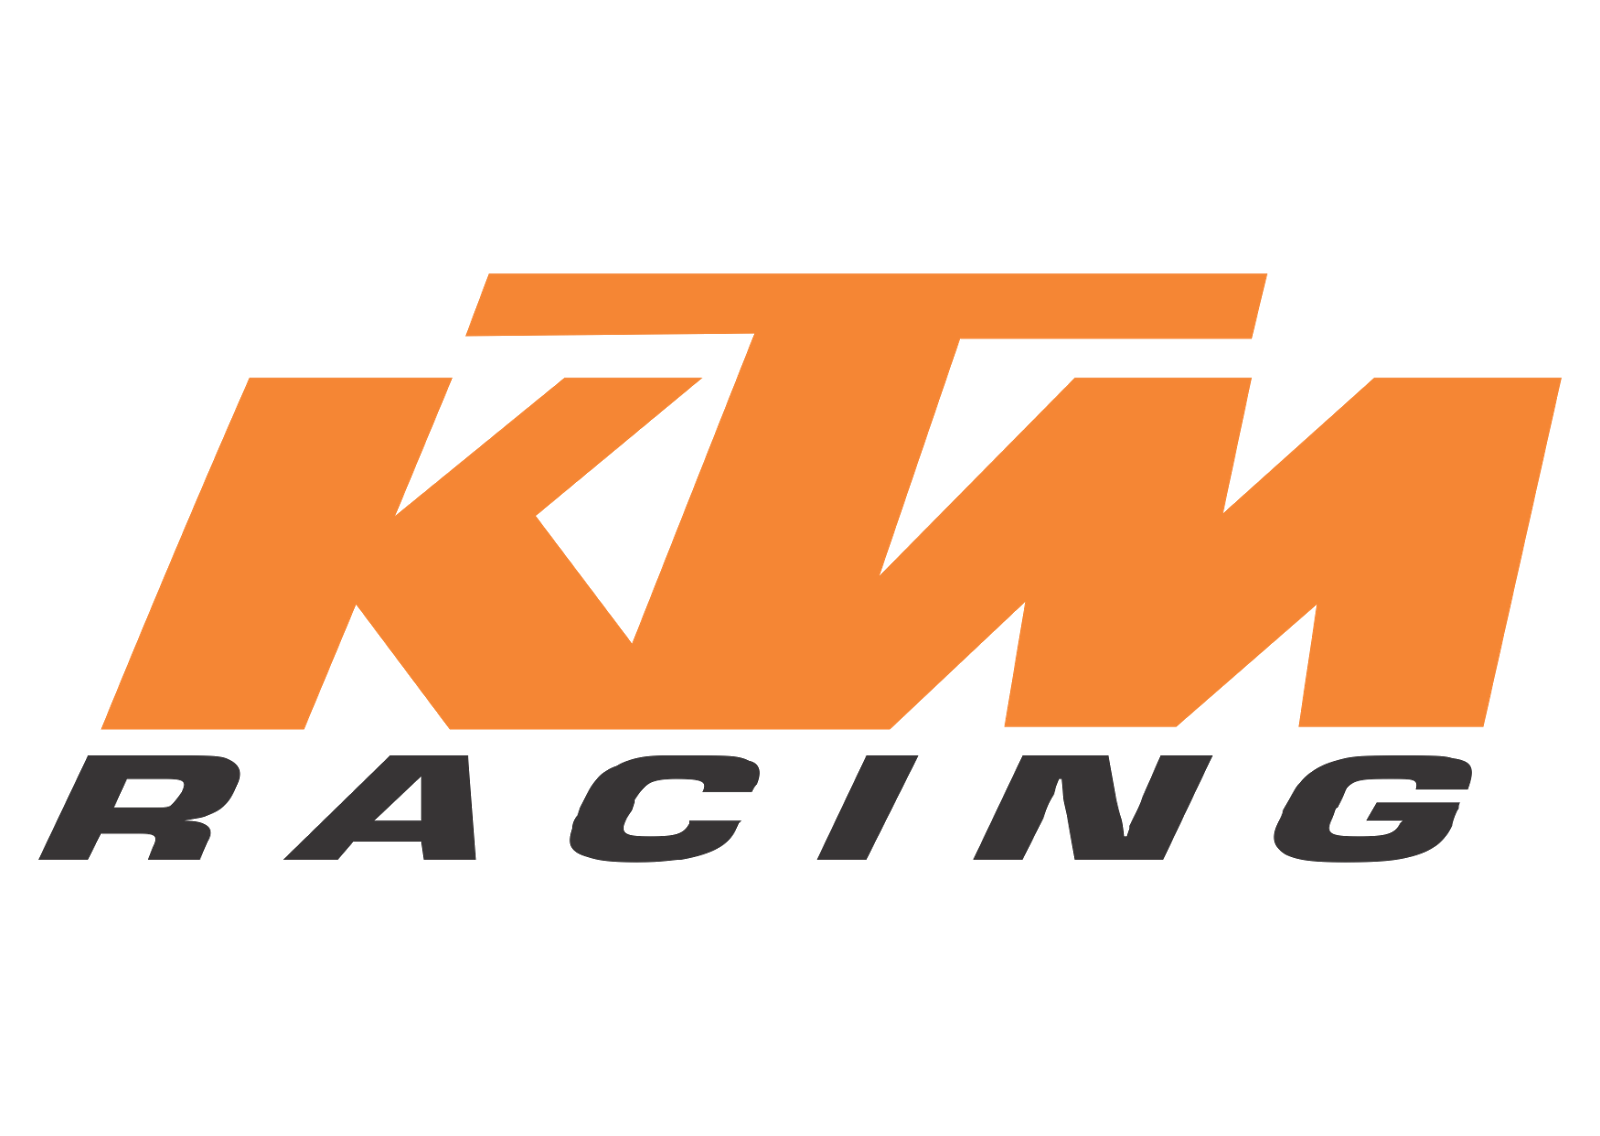 Ktm Ready To Race Logo Vector >> KTM Racing Logo Vector | Vector logo download | Pinterest | Ktm motorcycles, Motorcycle and Bike